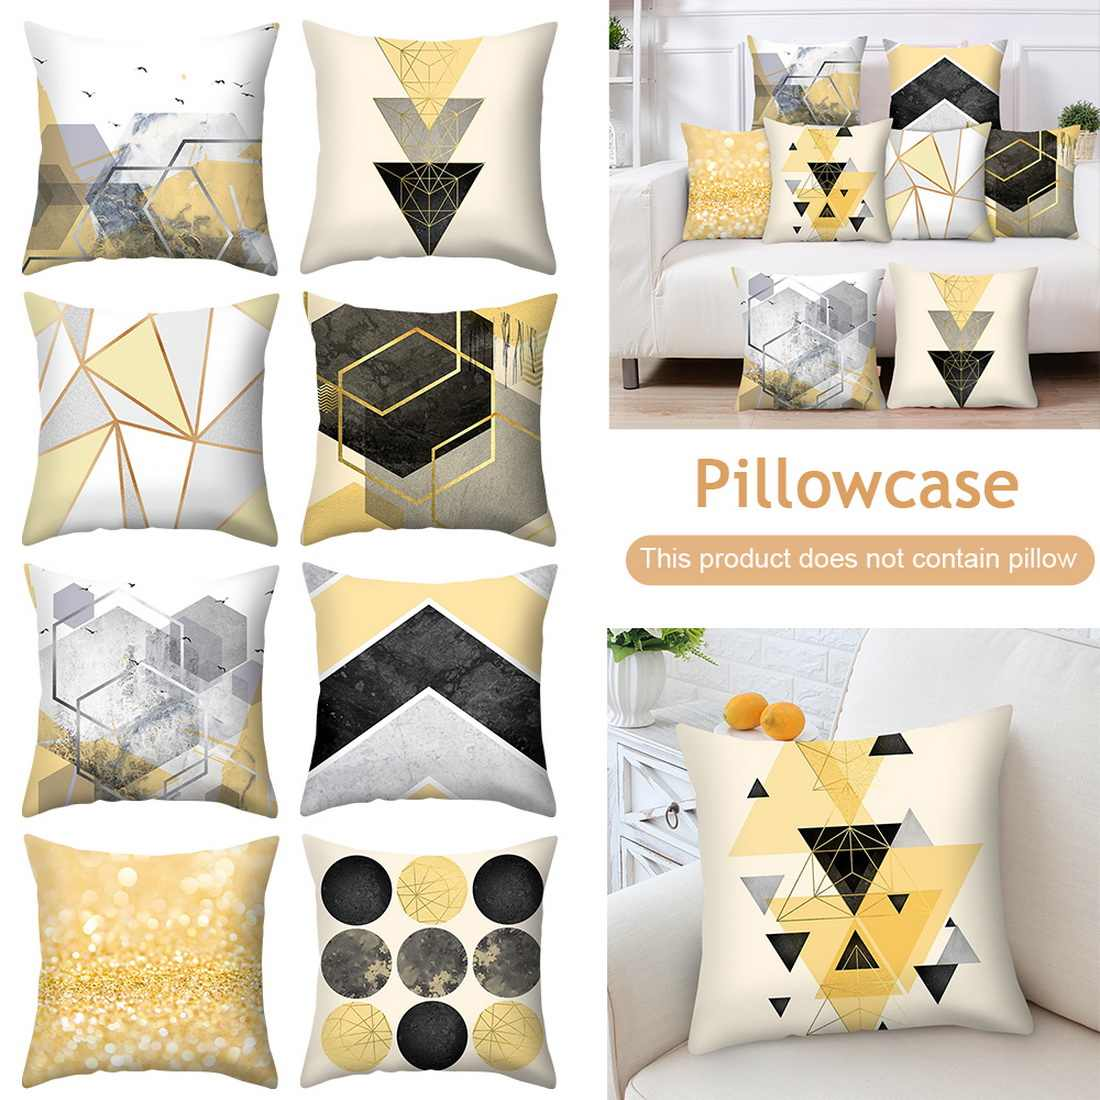 Urijk Yellow Geometric Printed Throw Pillow Case Sofa Car Waist Cushion Cover Home Decor Kussenhoes Housse de Coussin Pillowcase